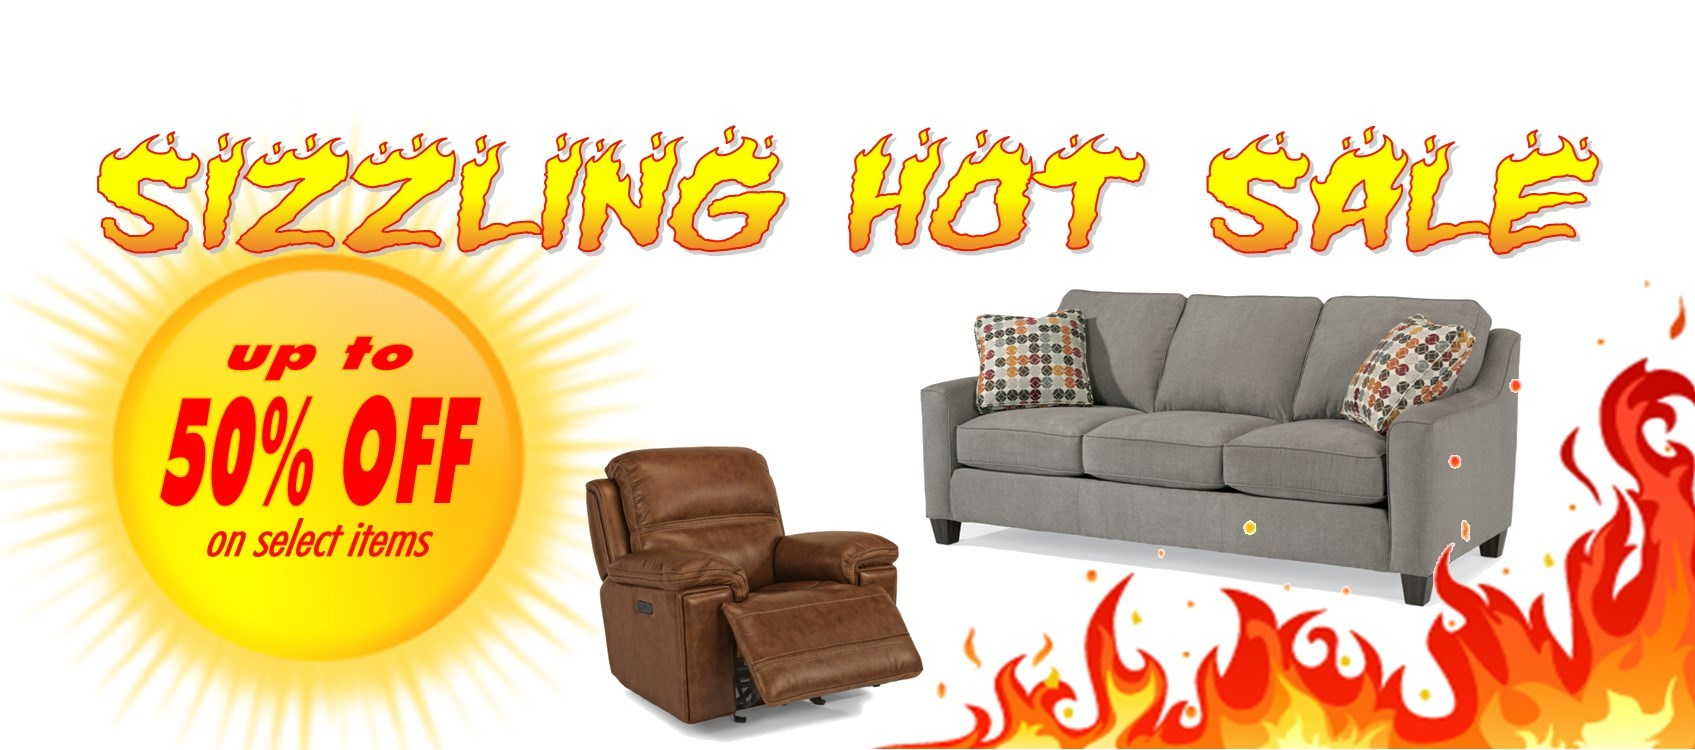 Save up to 50% OFF select items during the Sizzling Hot Sale